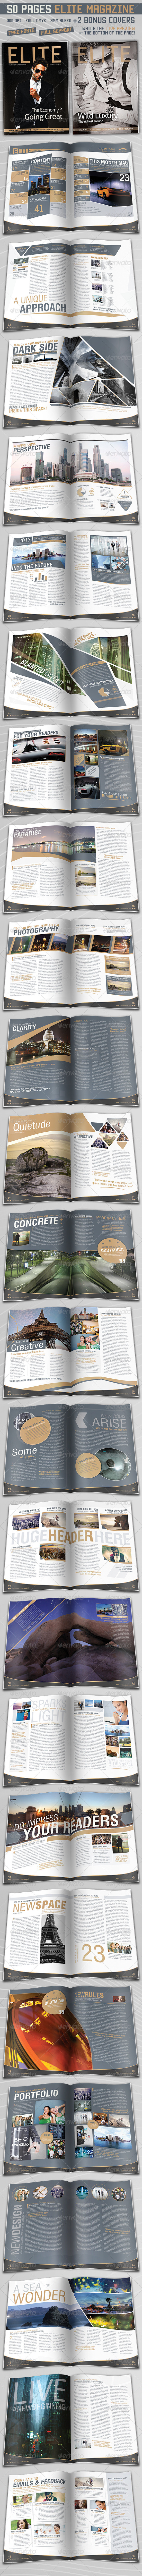 GraphicRiver Elite Magazine 50 Pages & 2 Bonus Covers 3796055